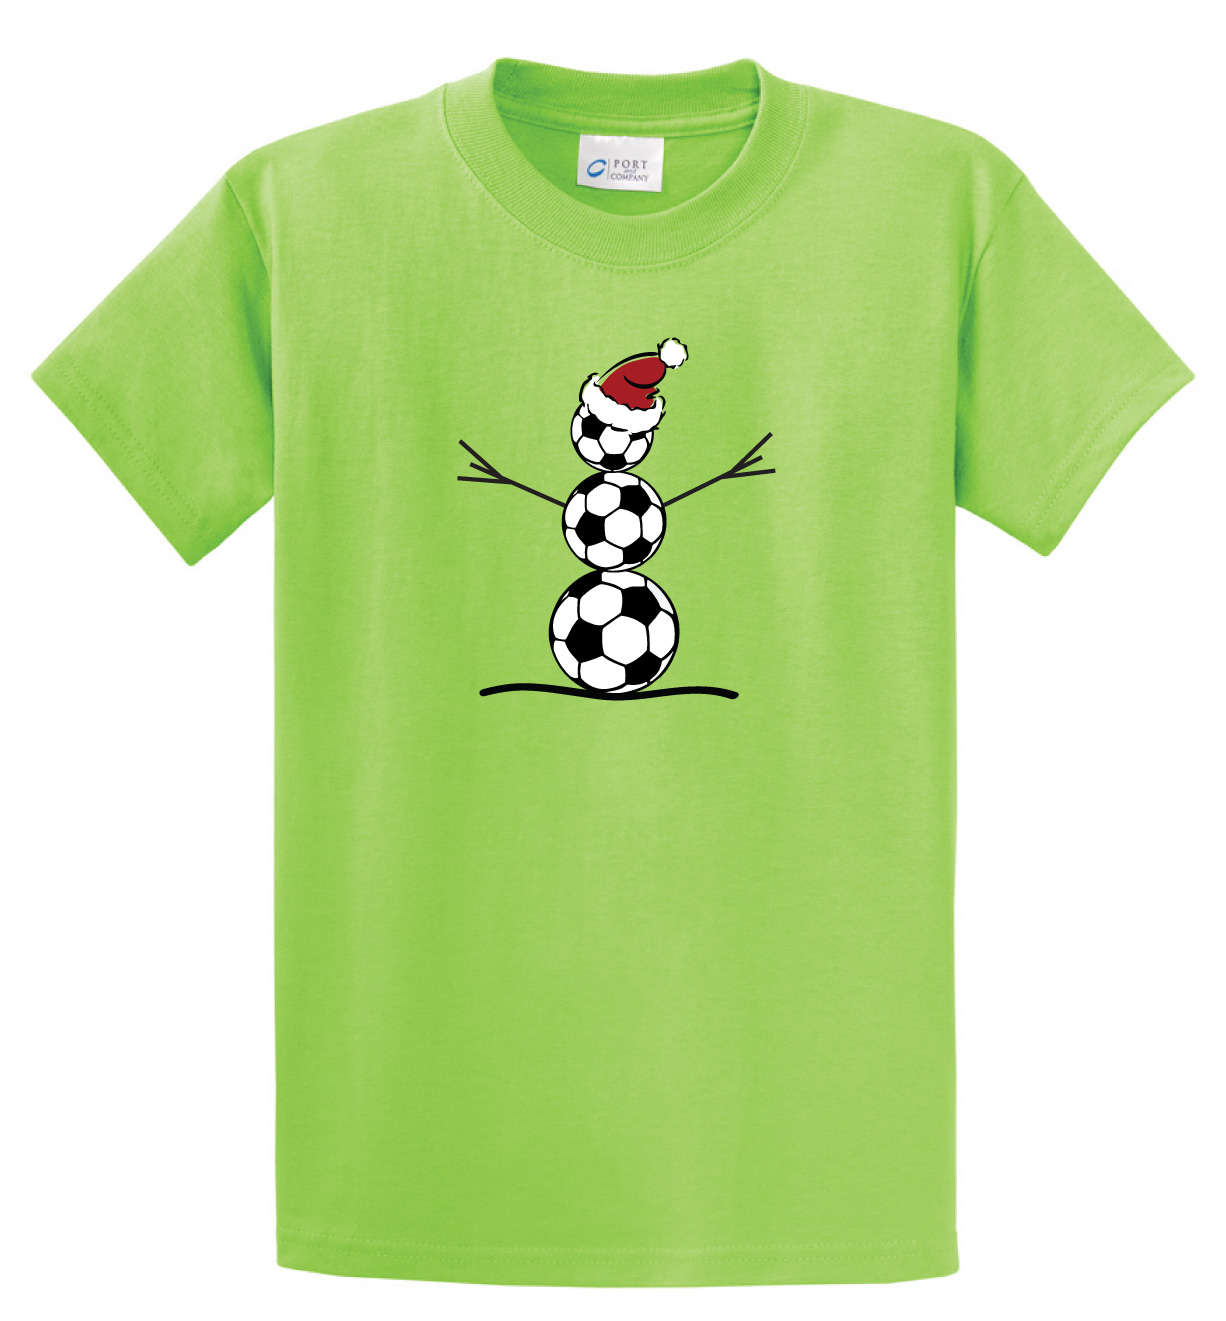 Soccer Snowman t shirt by Code Four Athletics in lime